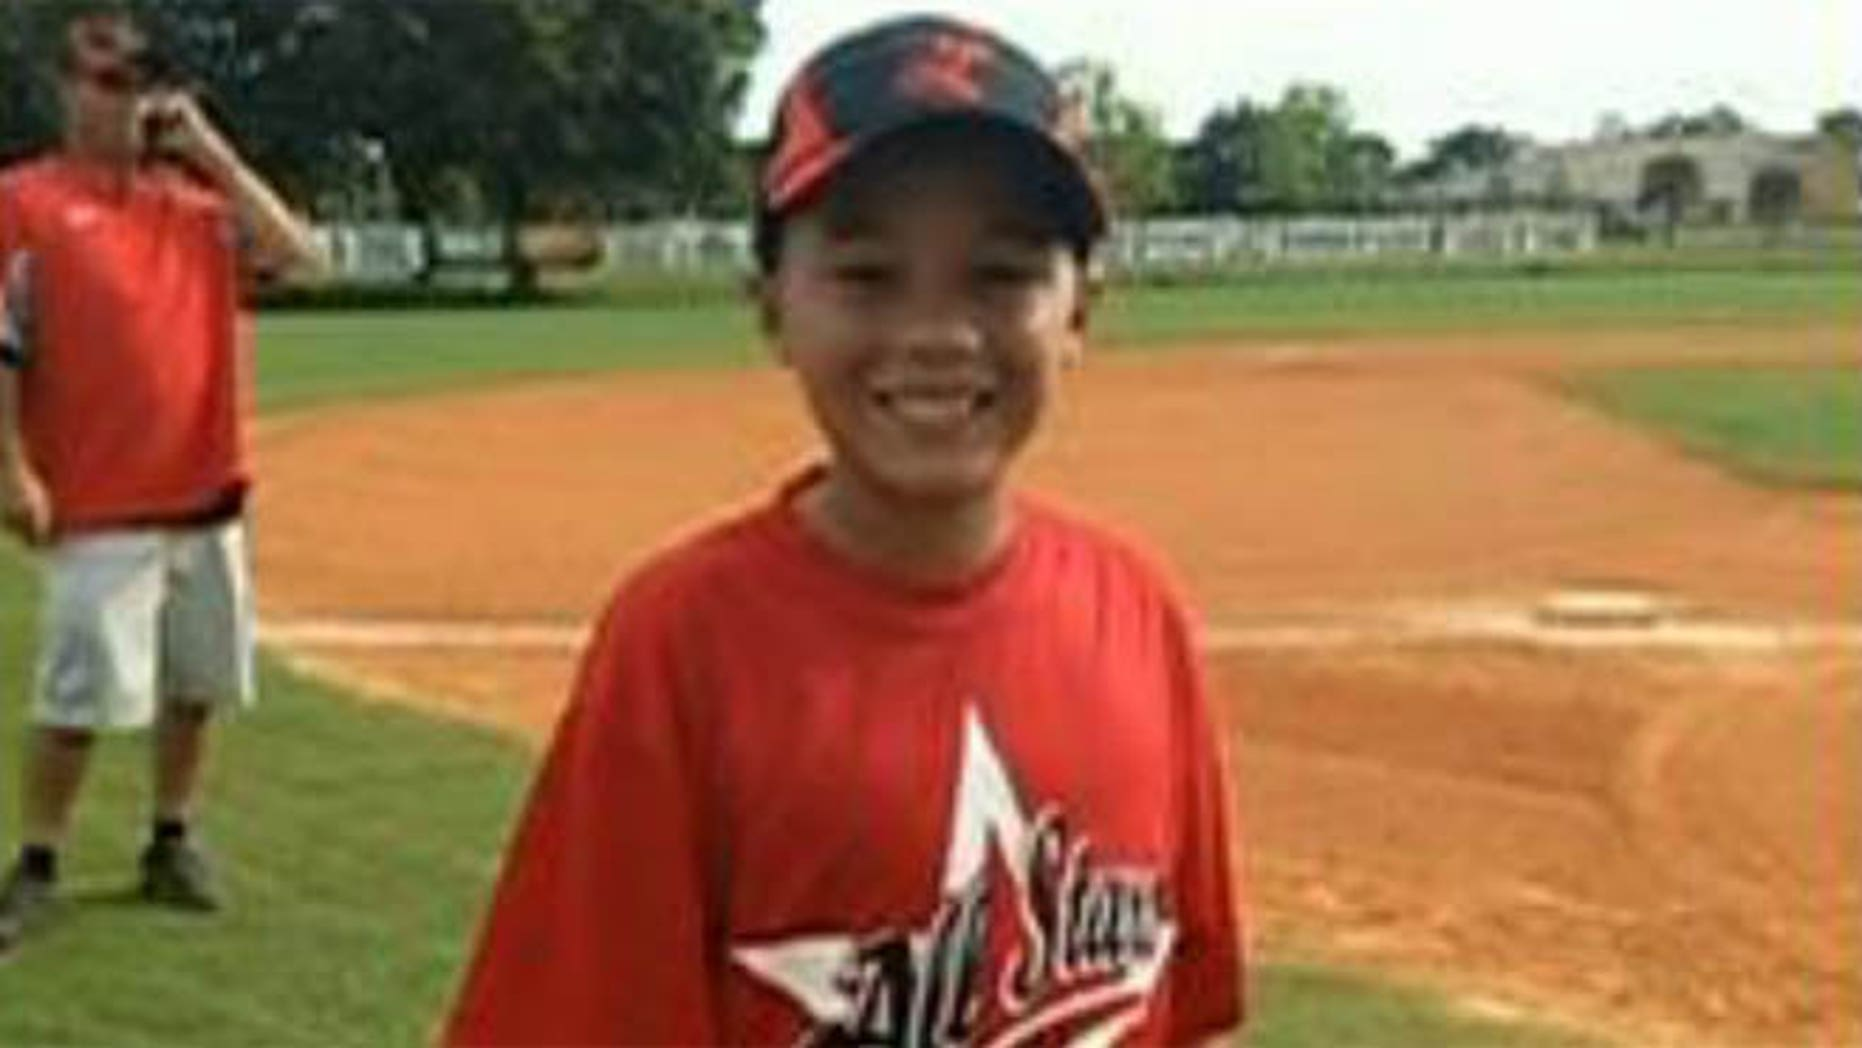 Zachary Reyna was fighting for his life after contracting a rare infection that attacked his brain.